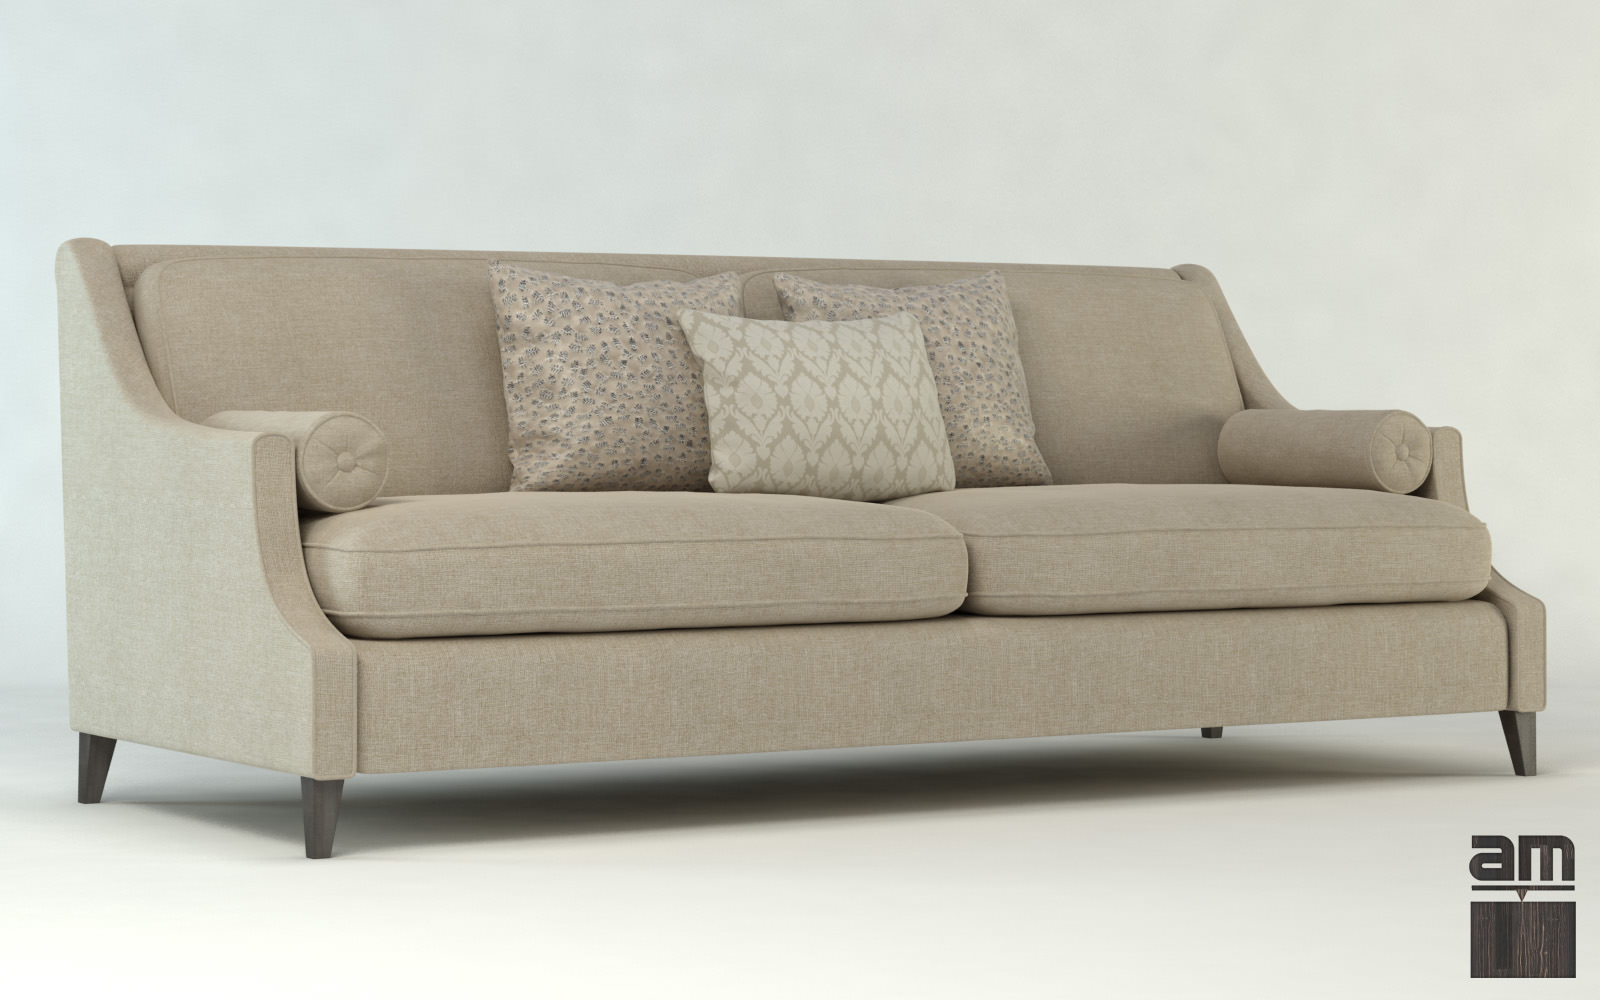 Modern sofa dubai 3d model max obj fbx for Sofa 3d model